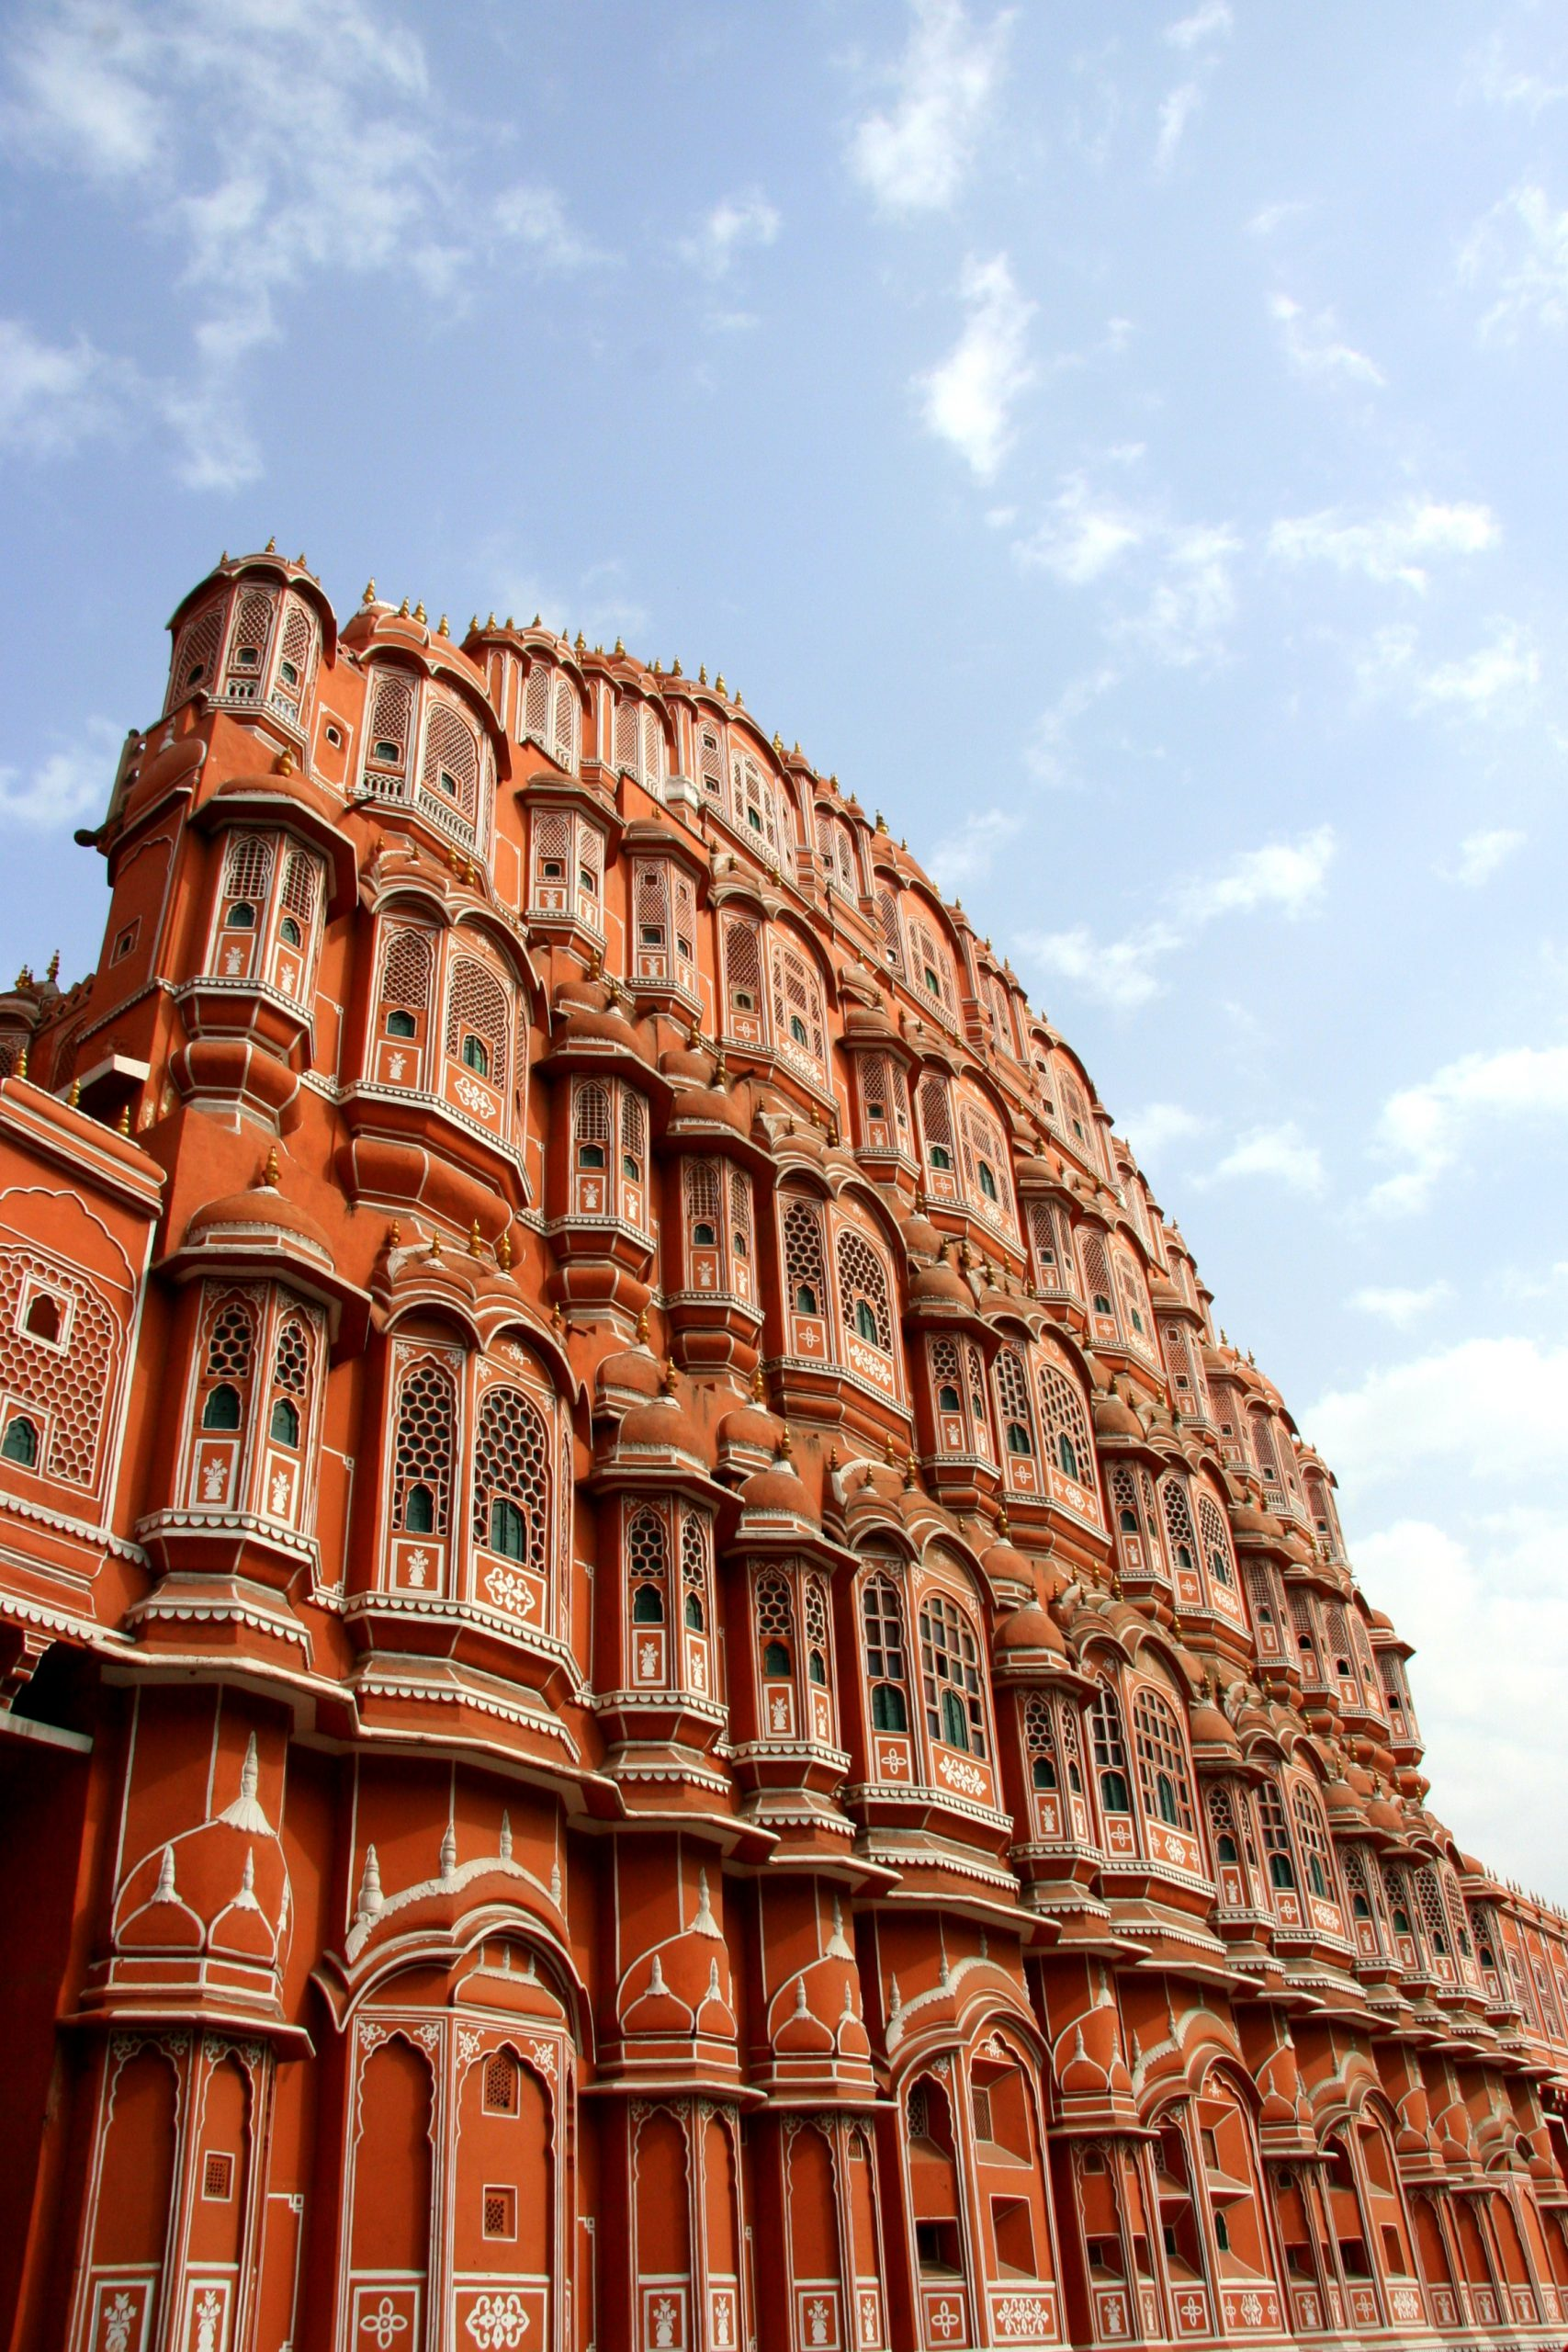 2015, Hawa Mahal (Palace of the Winds), Jaipur, India